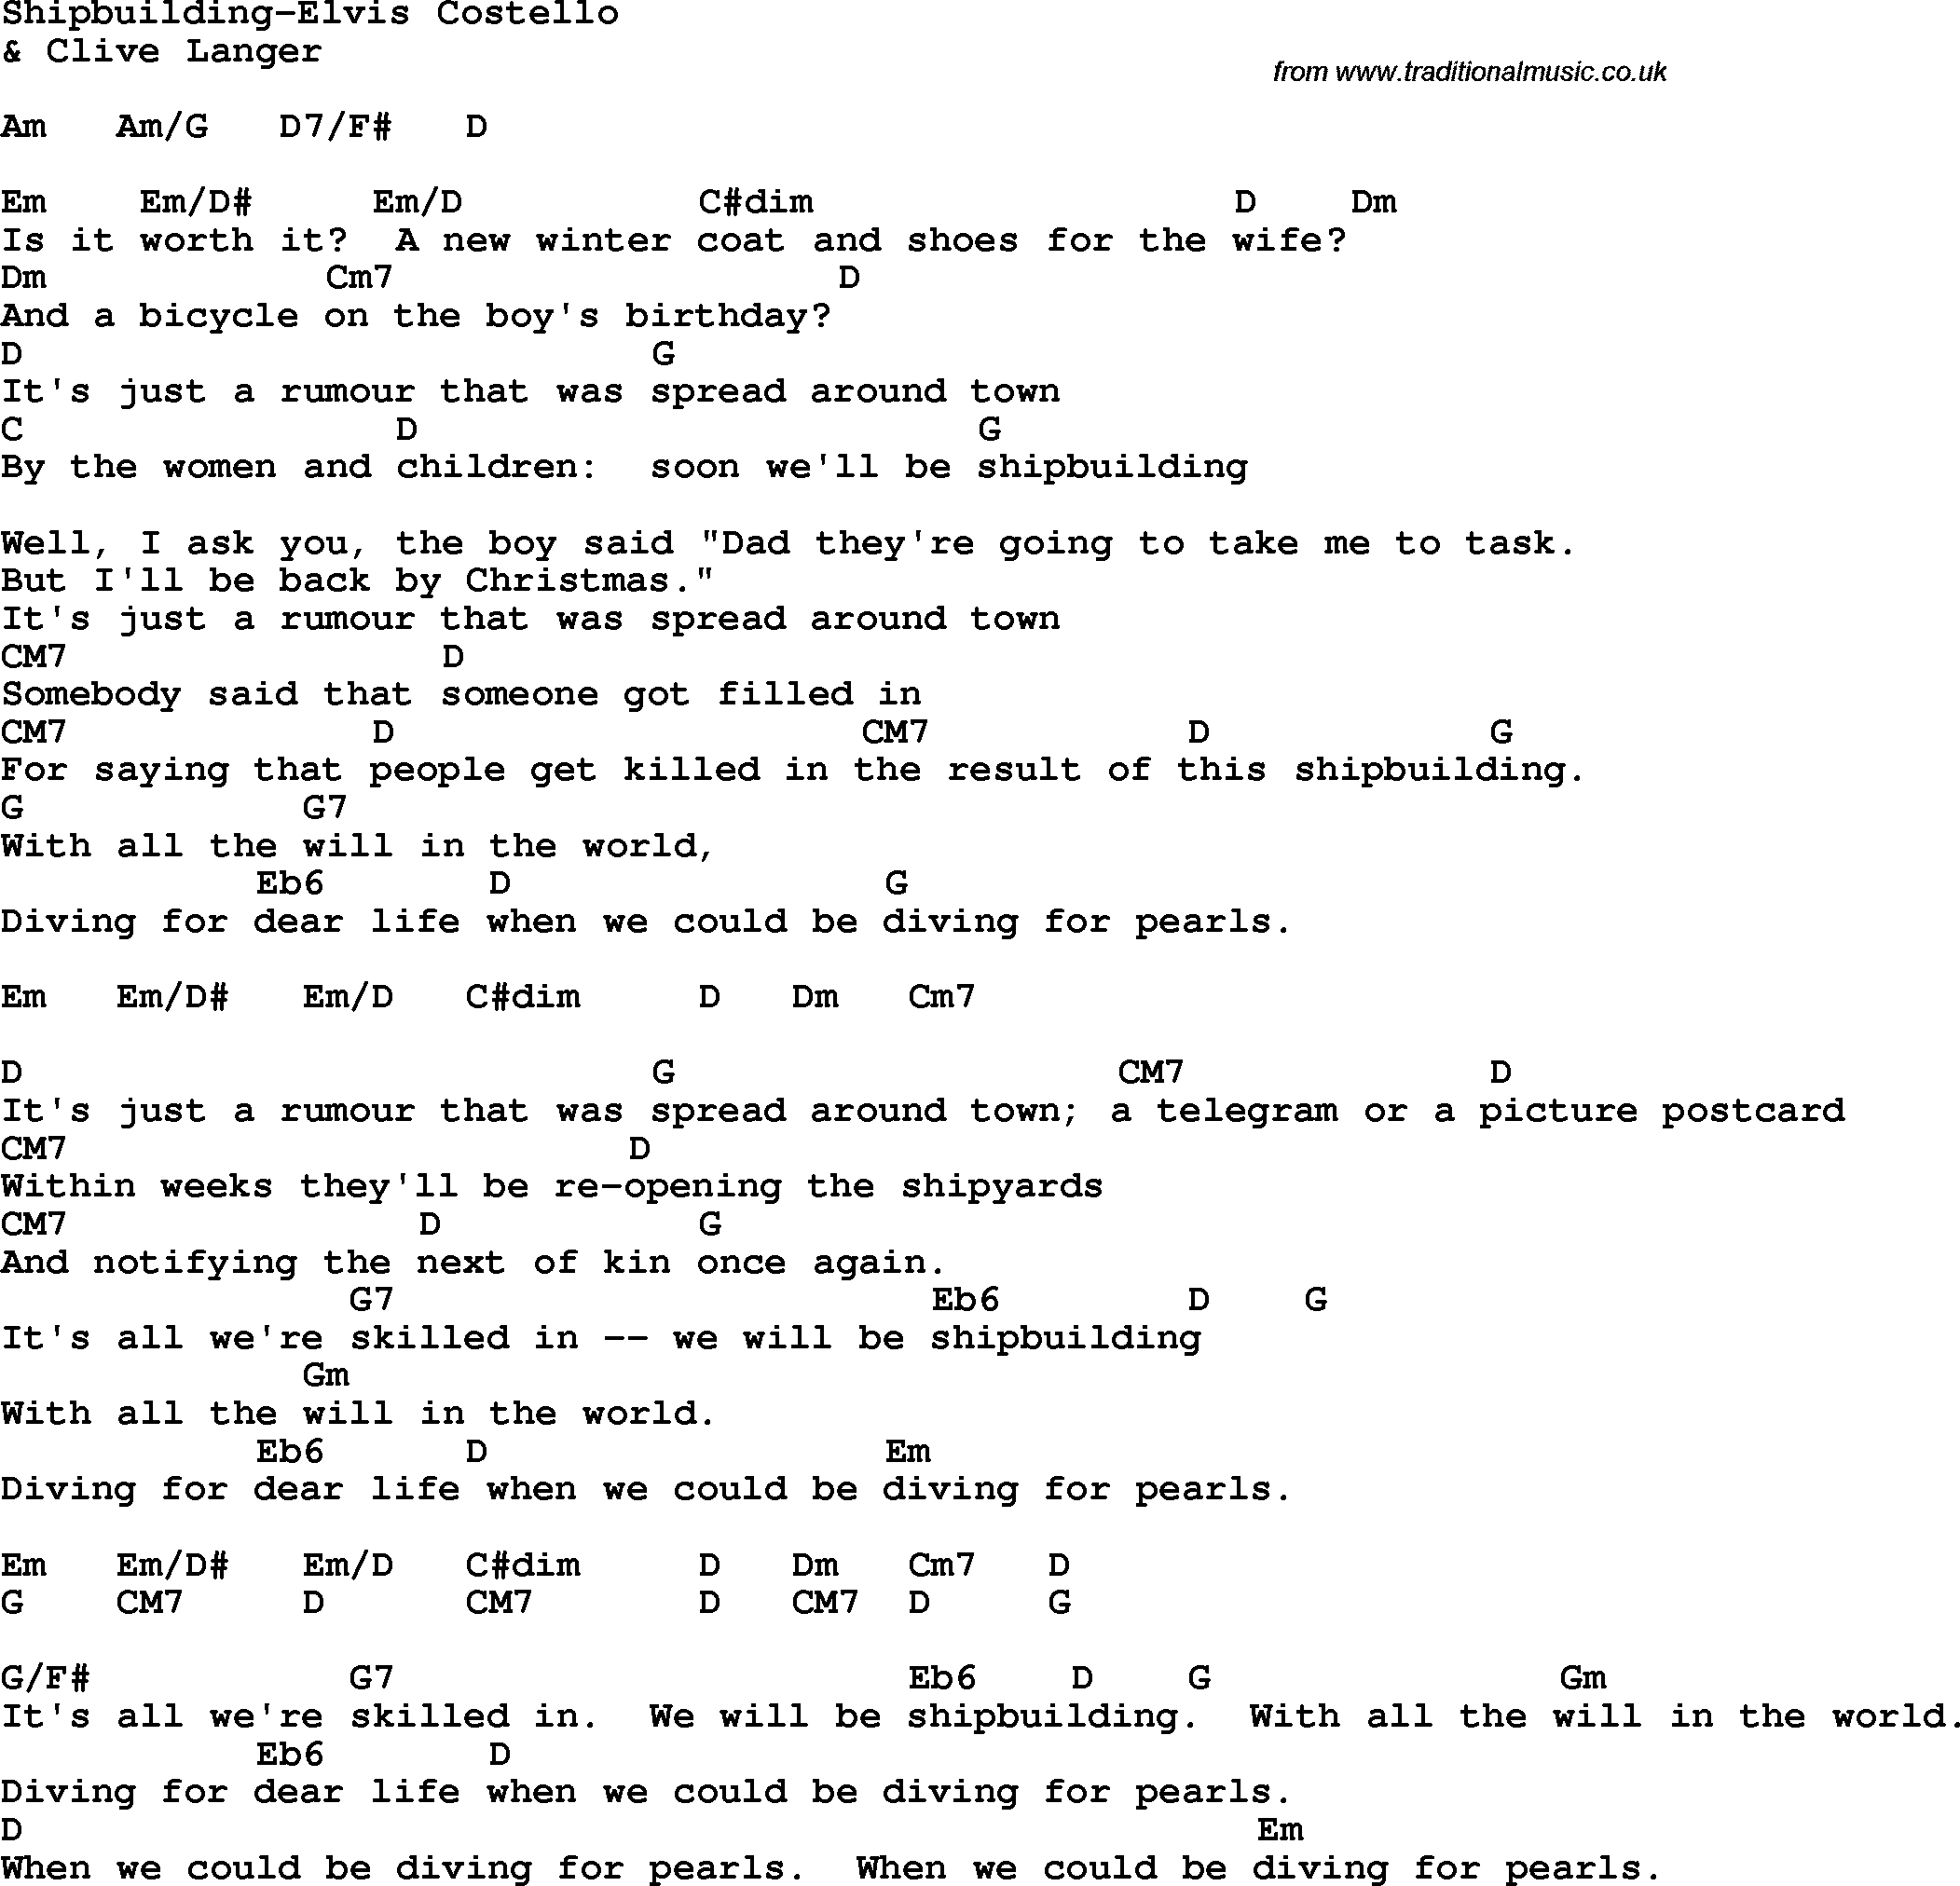 Opinions on Shipbuilding (song)